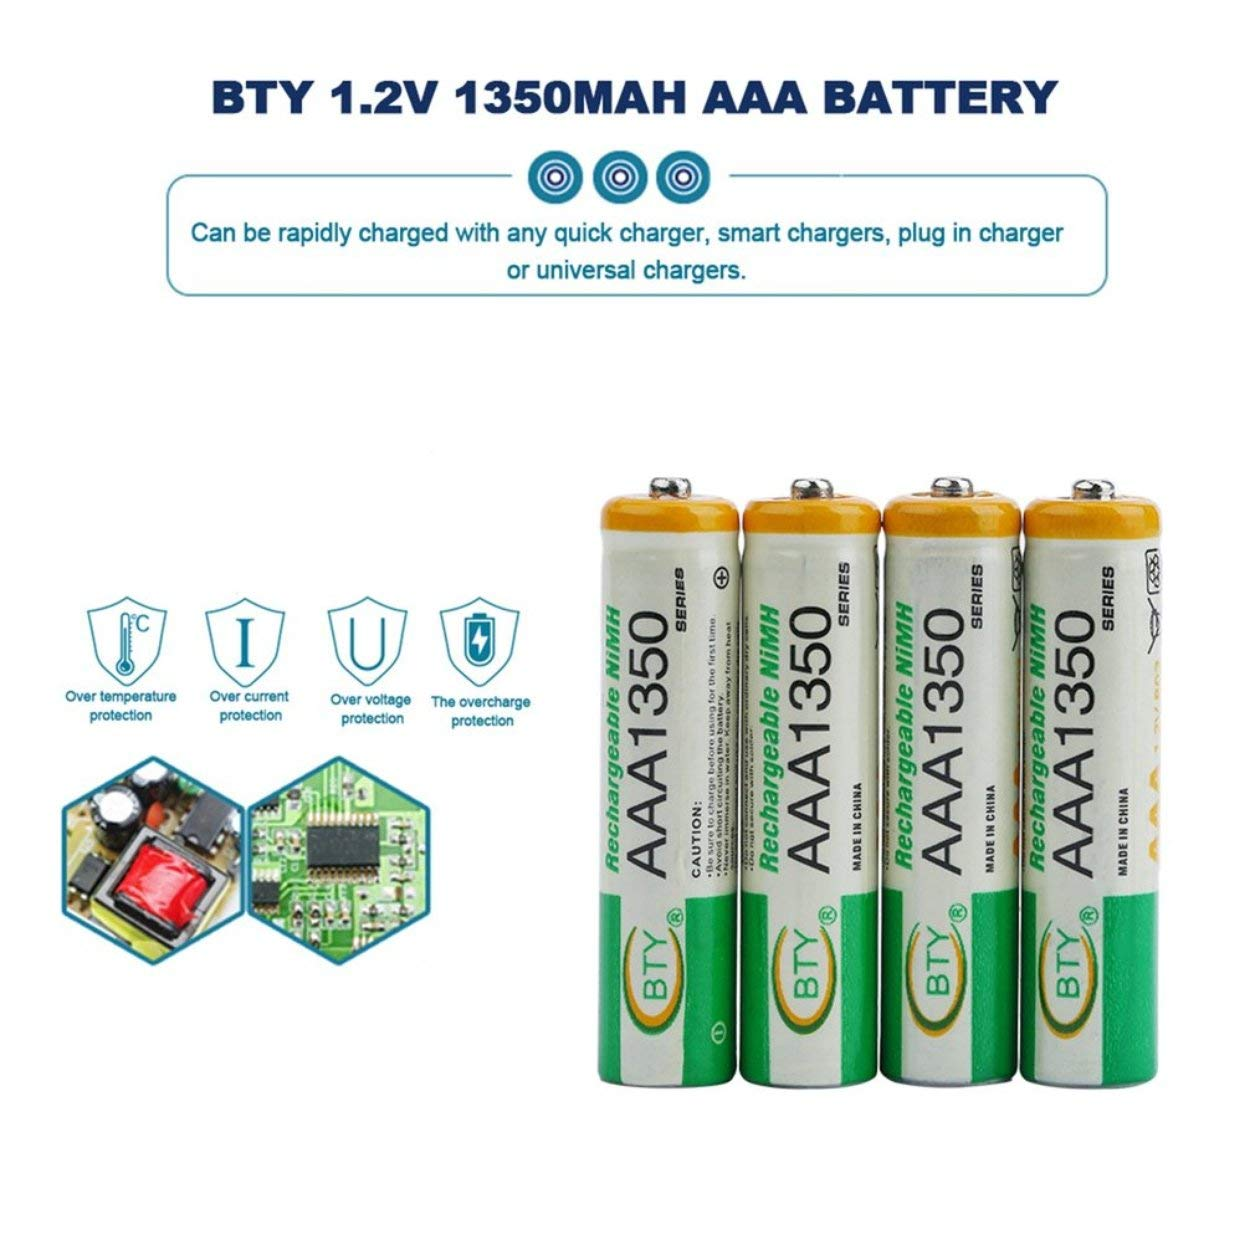 4pcs BTY 1.2V AAA 3A 1350mAh Ni-MH Rechargeable Battery for RC Toys Camera